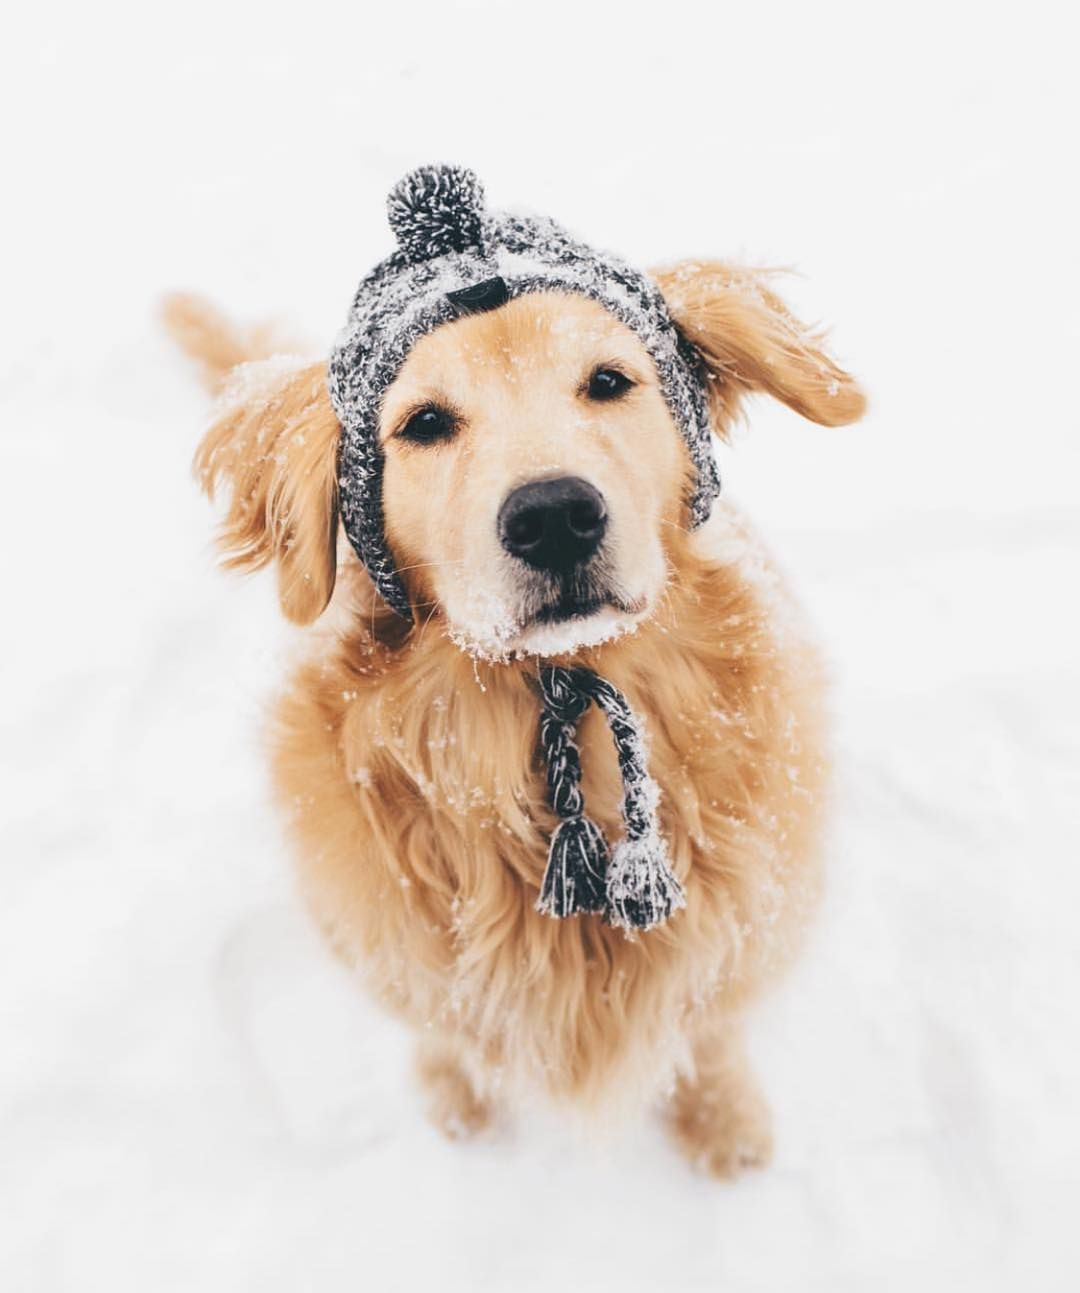 One Happy Golden In The Snow Snow Dogs Puppy Dog Eyes Dogs